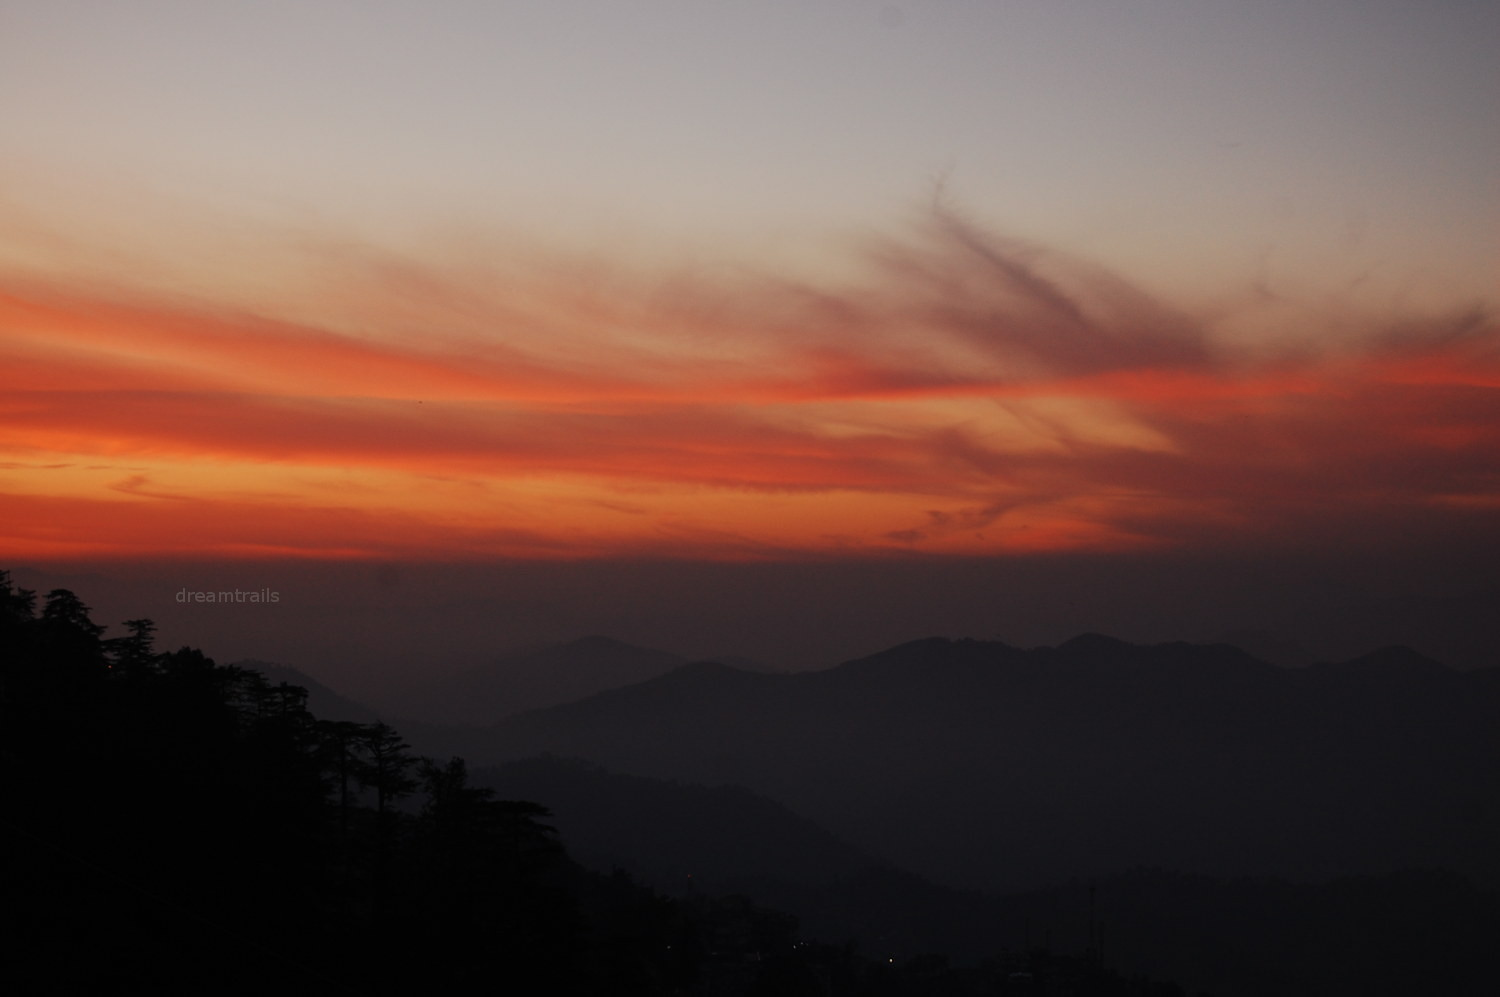 Sunset at The Ridge, Shimla